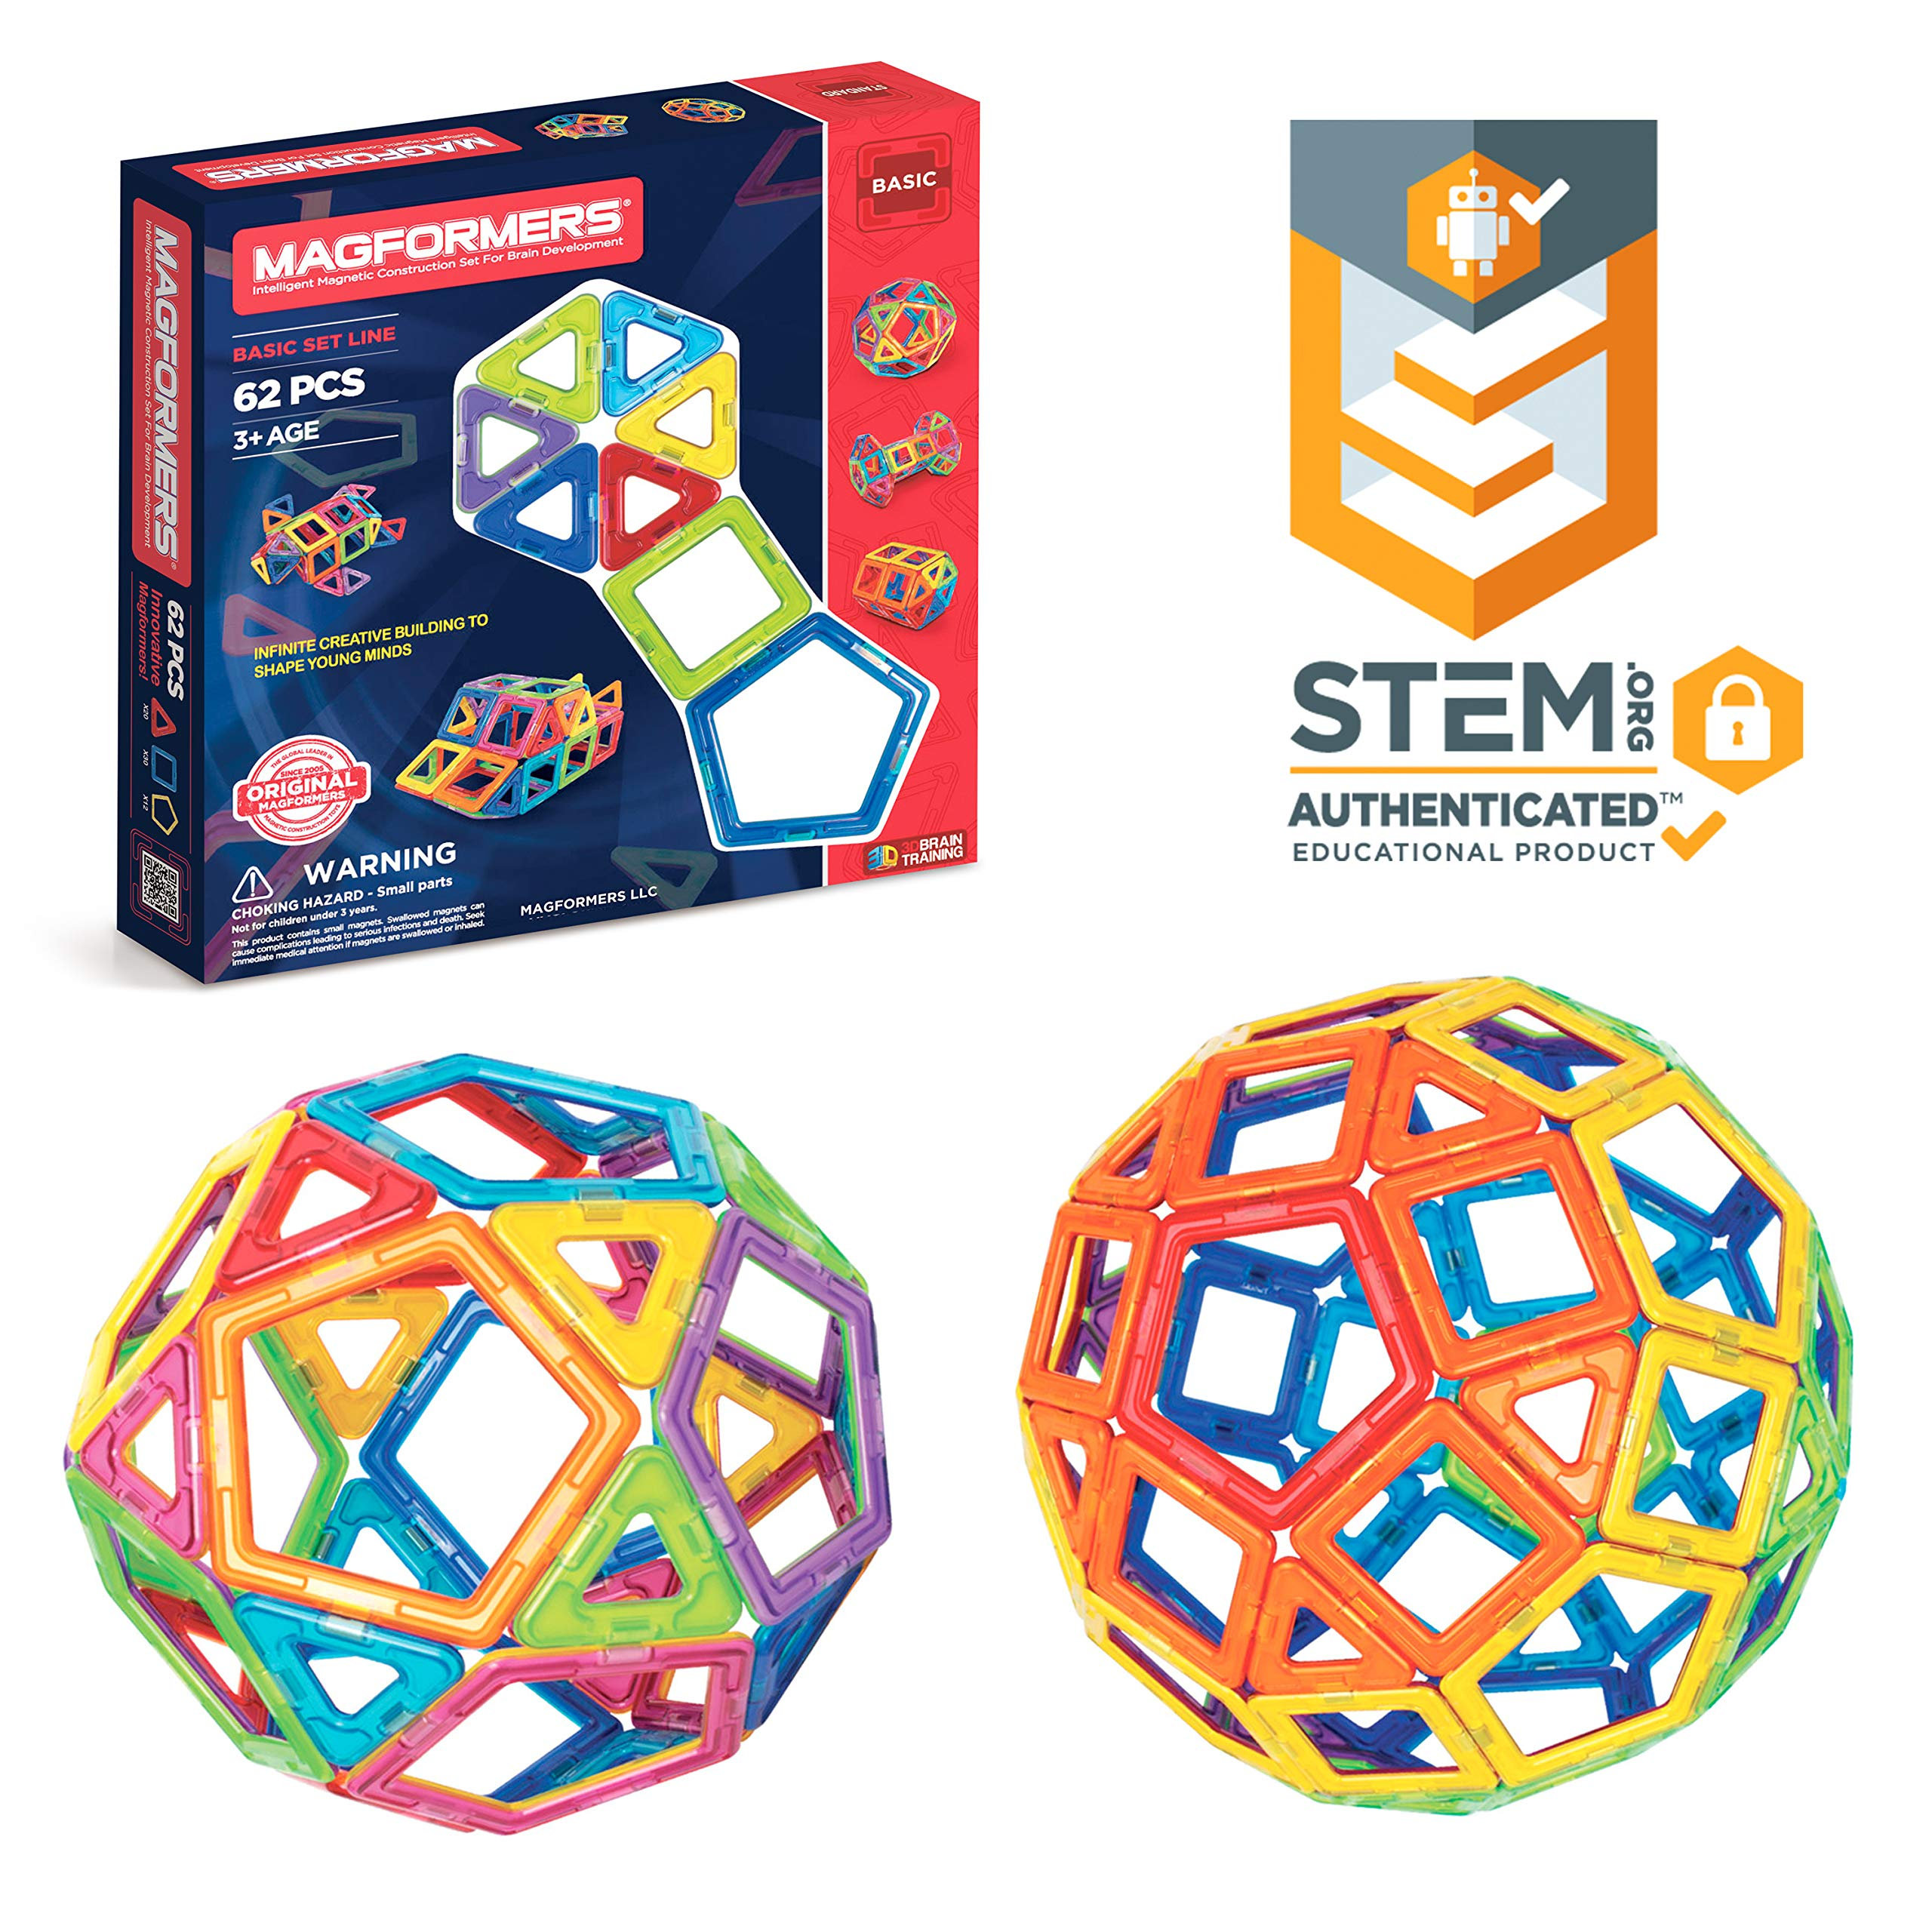 Magformers Basic Set (62-Pieces)  Magnetic Building Blocks, Educational Magnetic Tiles, Magnetic Building STEM Toy by Magformers